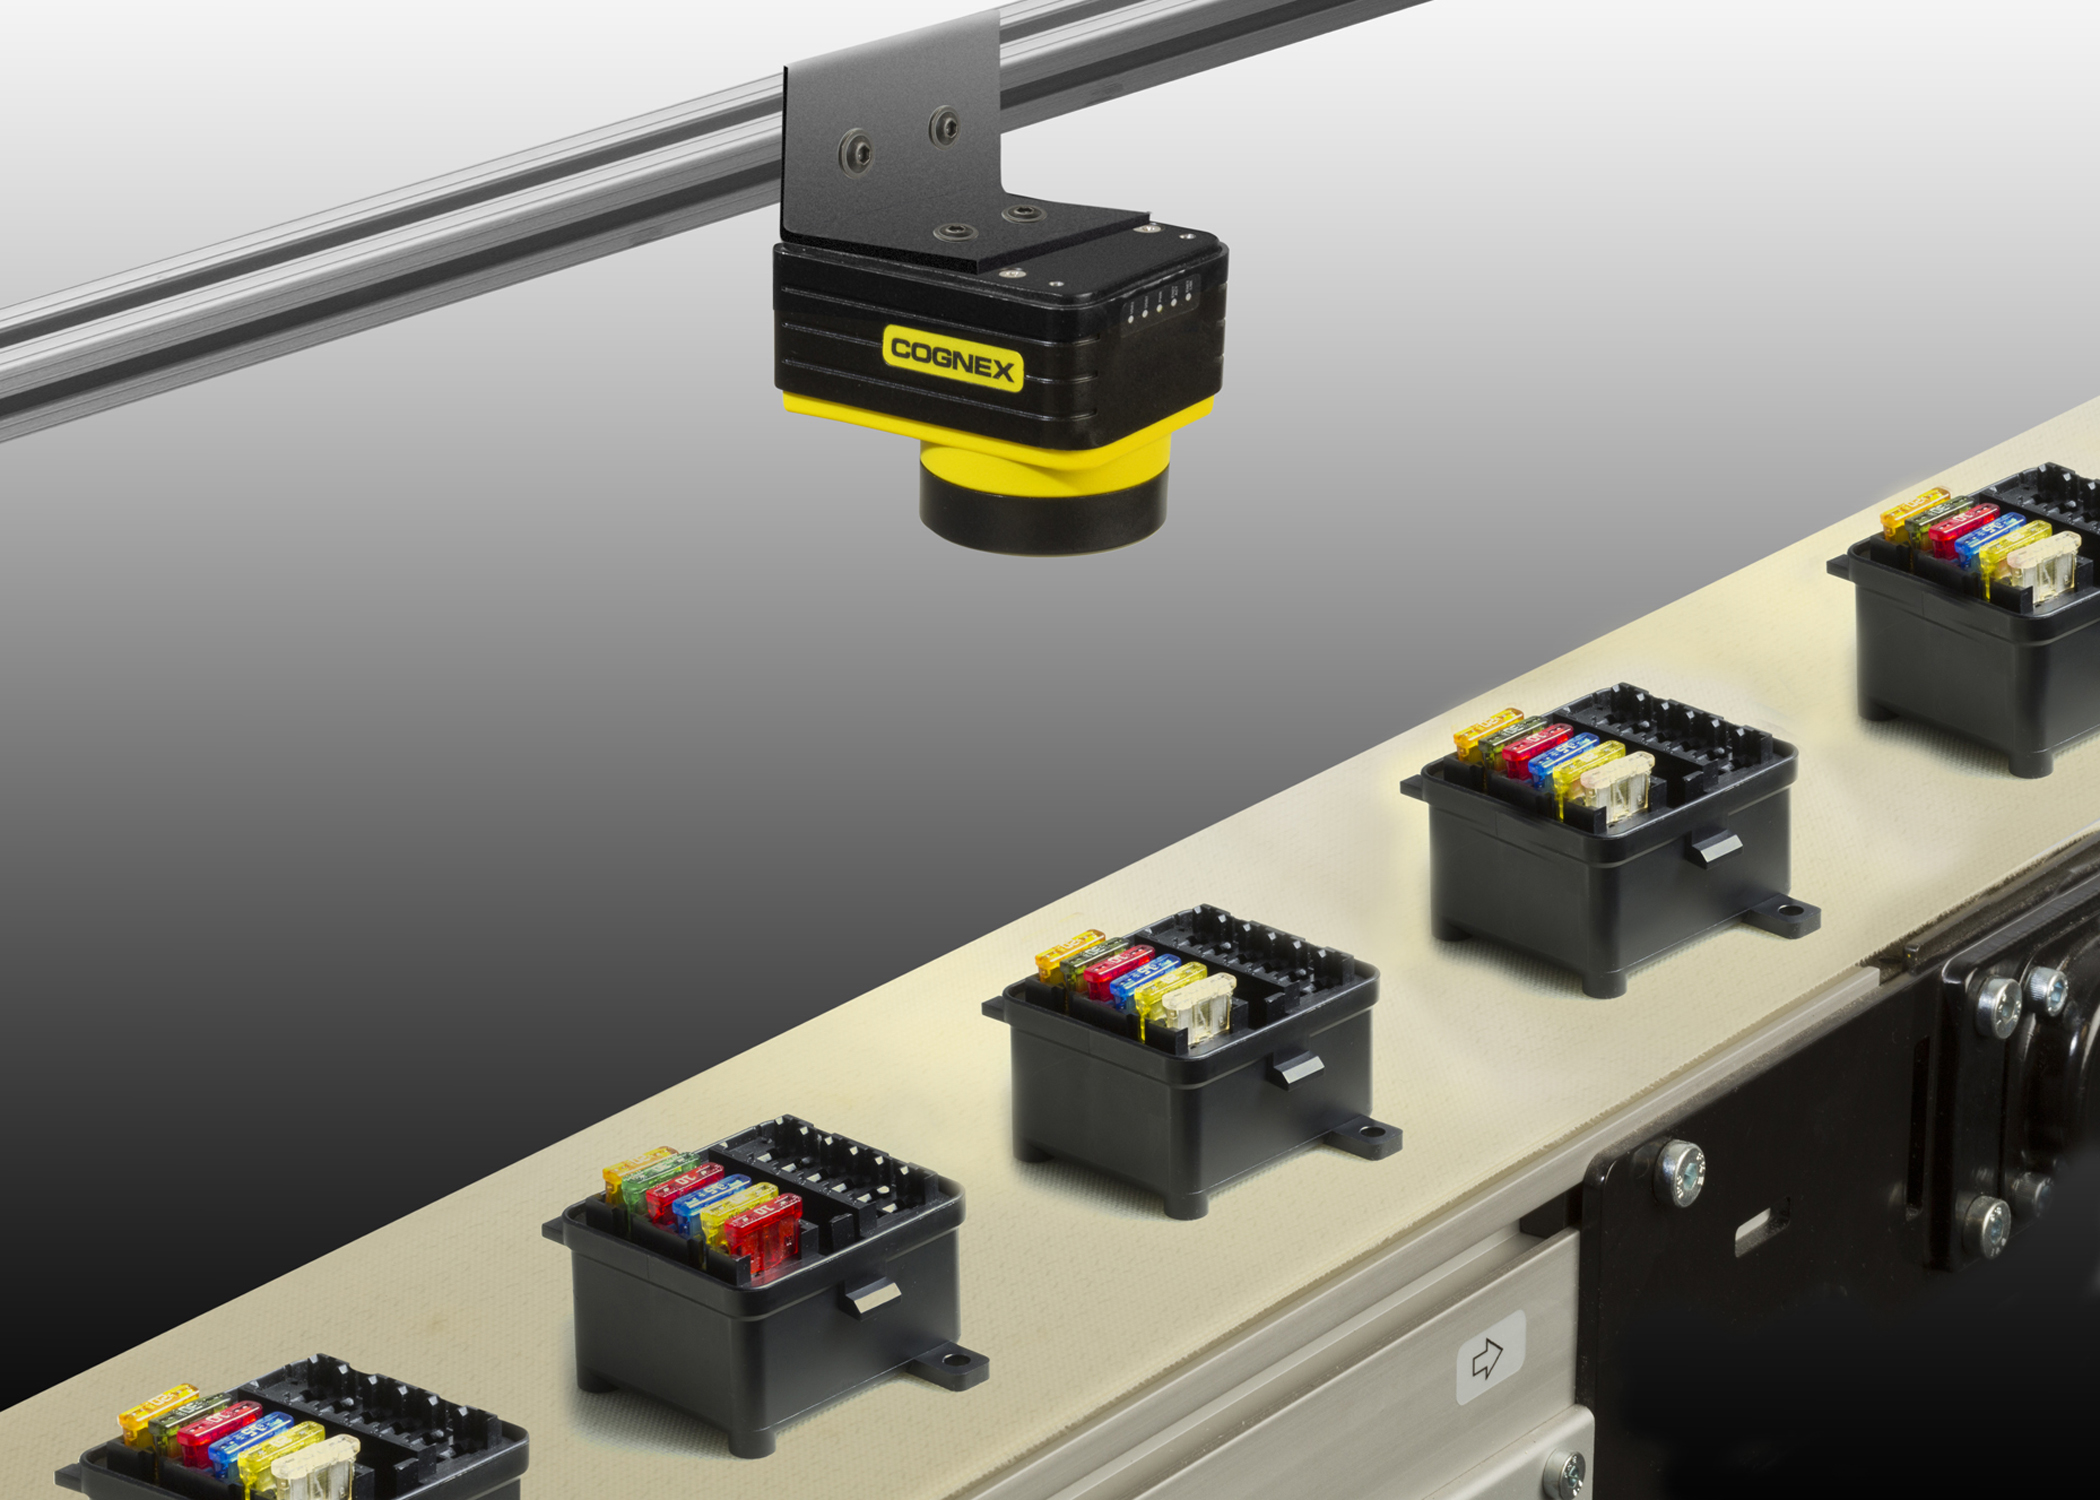 In-Sight 7010C vision system verifying colors on printer ink cartridges